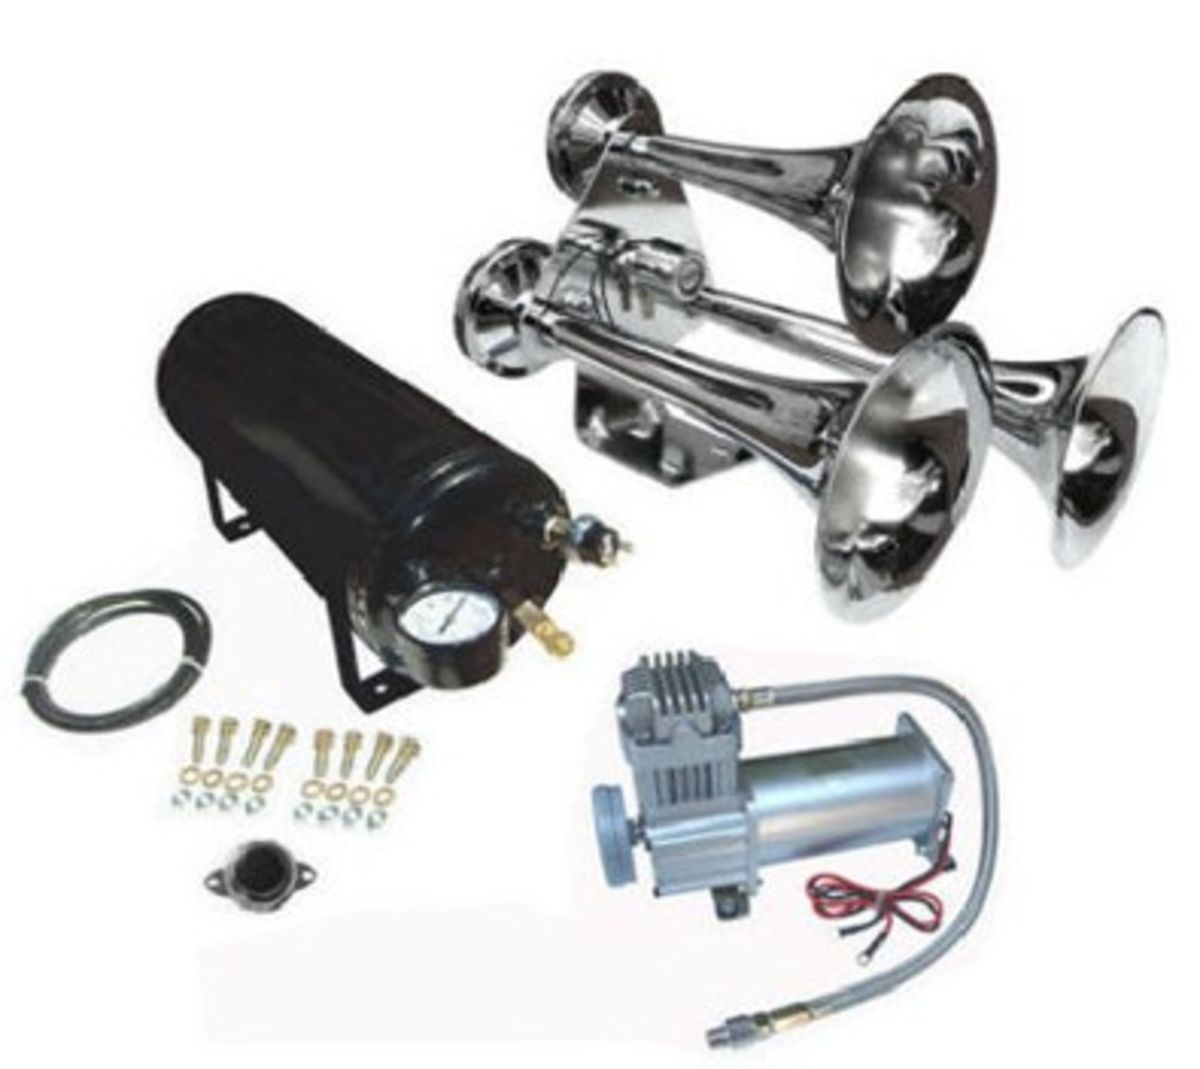 Headline for Loud Horn Kits for All Types of Vehicles - Superior Horns